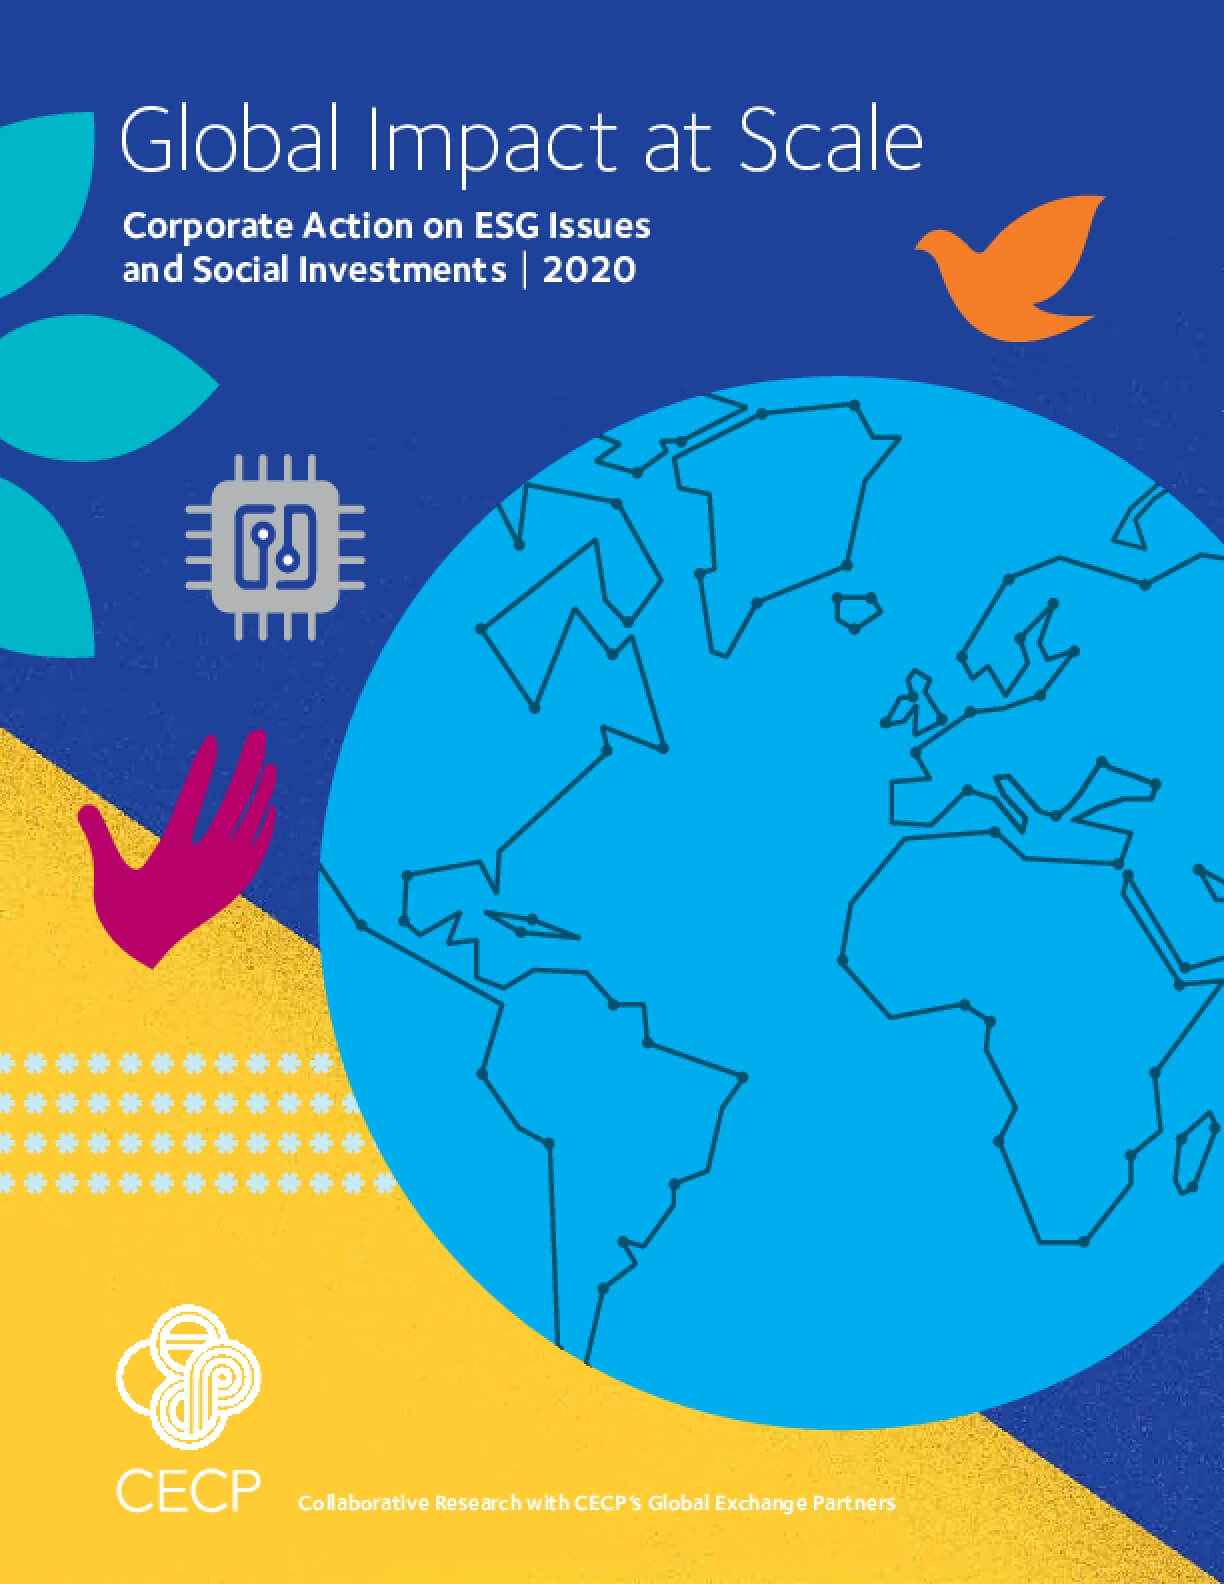 2020 Global Impact at Scale: Corporate Action on ESG Issues and Social Investments